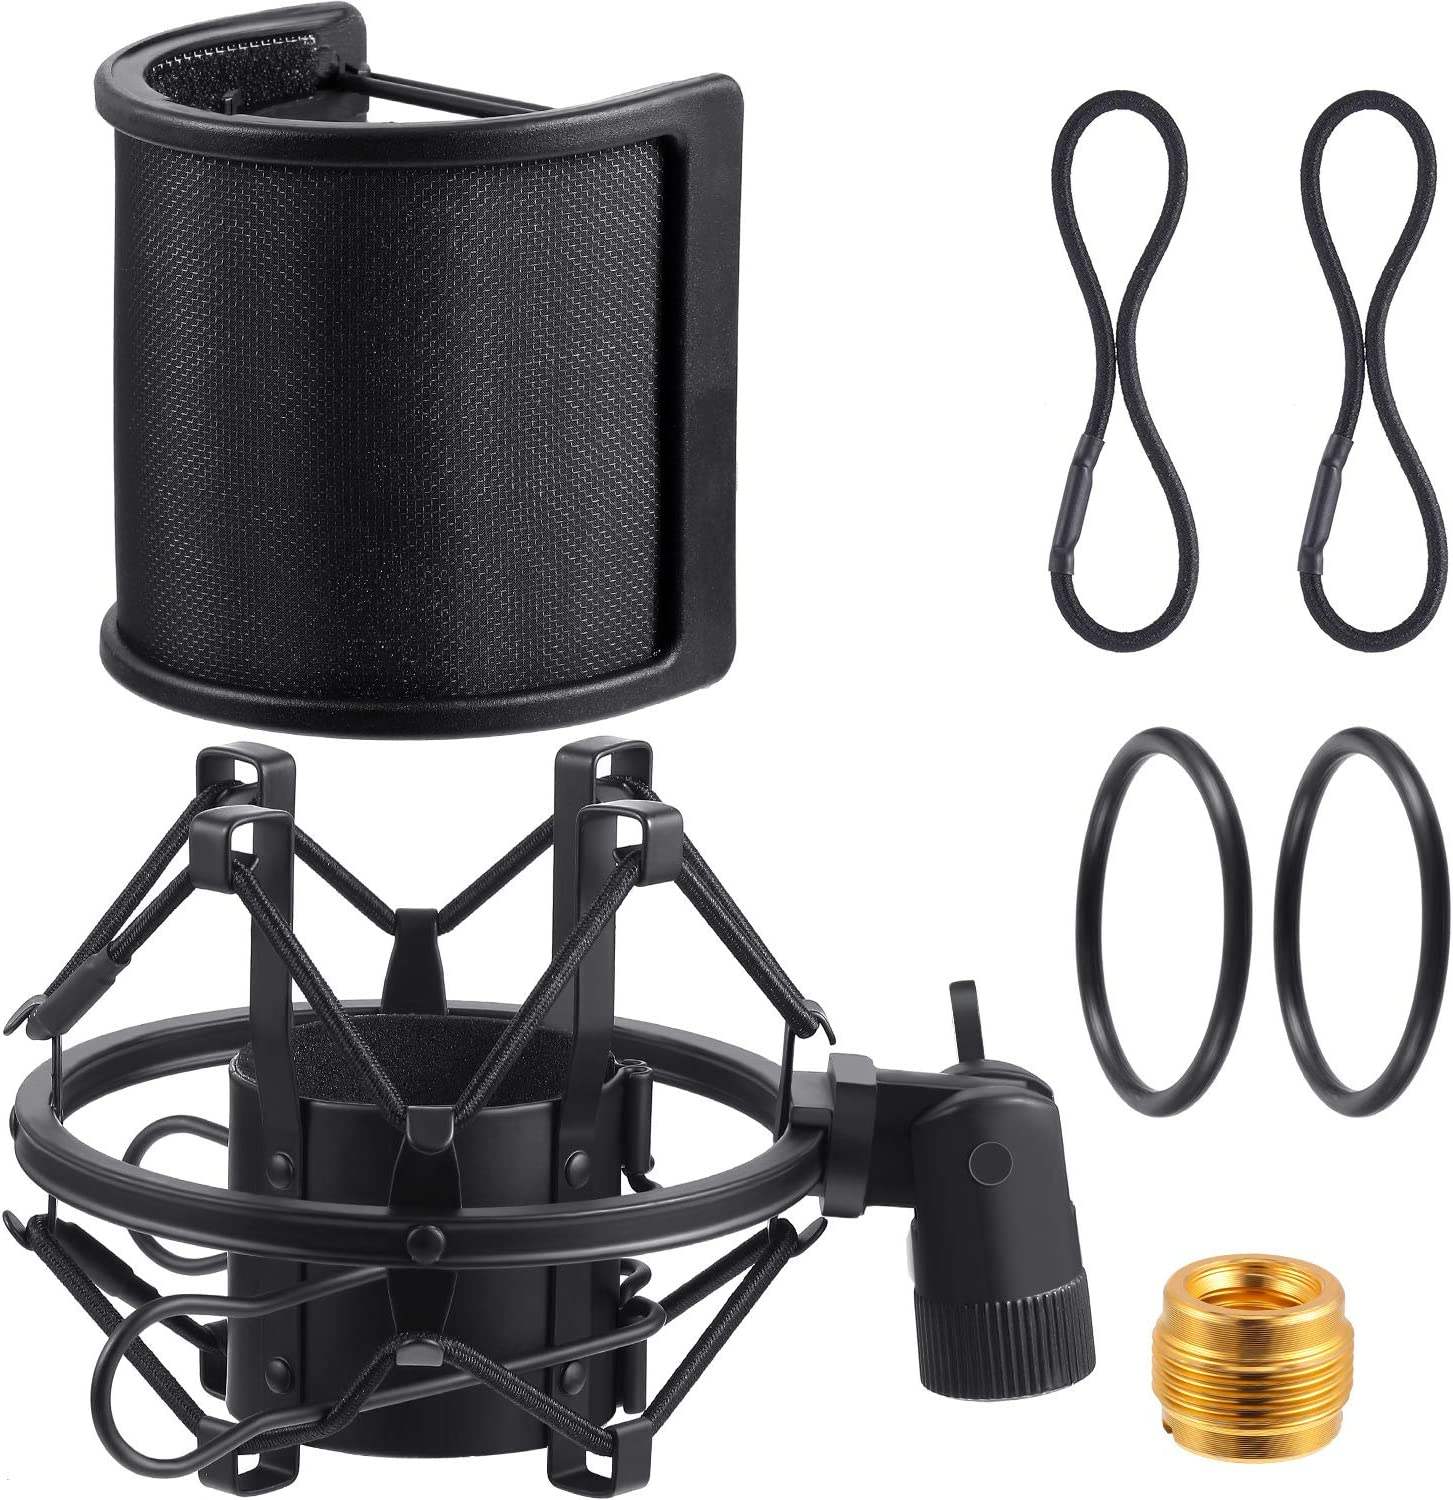 Mic Anti-Vibration Suspension Shock Mount Holder Clip 7 Pieces Microphone Holder Set Include Shock Mount with Pop Filter Replacement Rubber Band Universal Connector Adapter for 46-53 mm Microphone